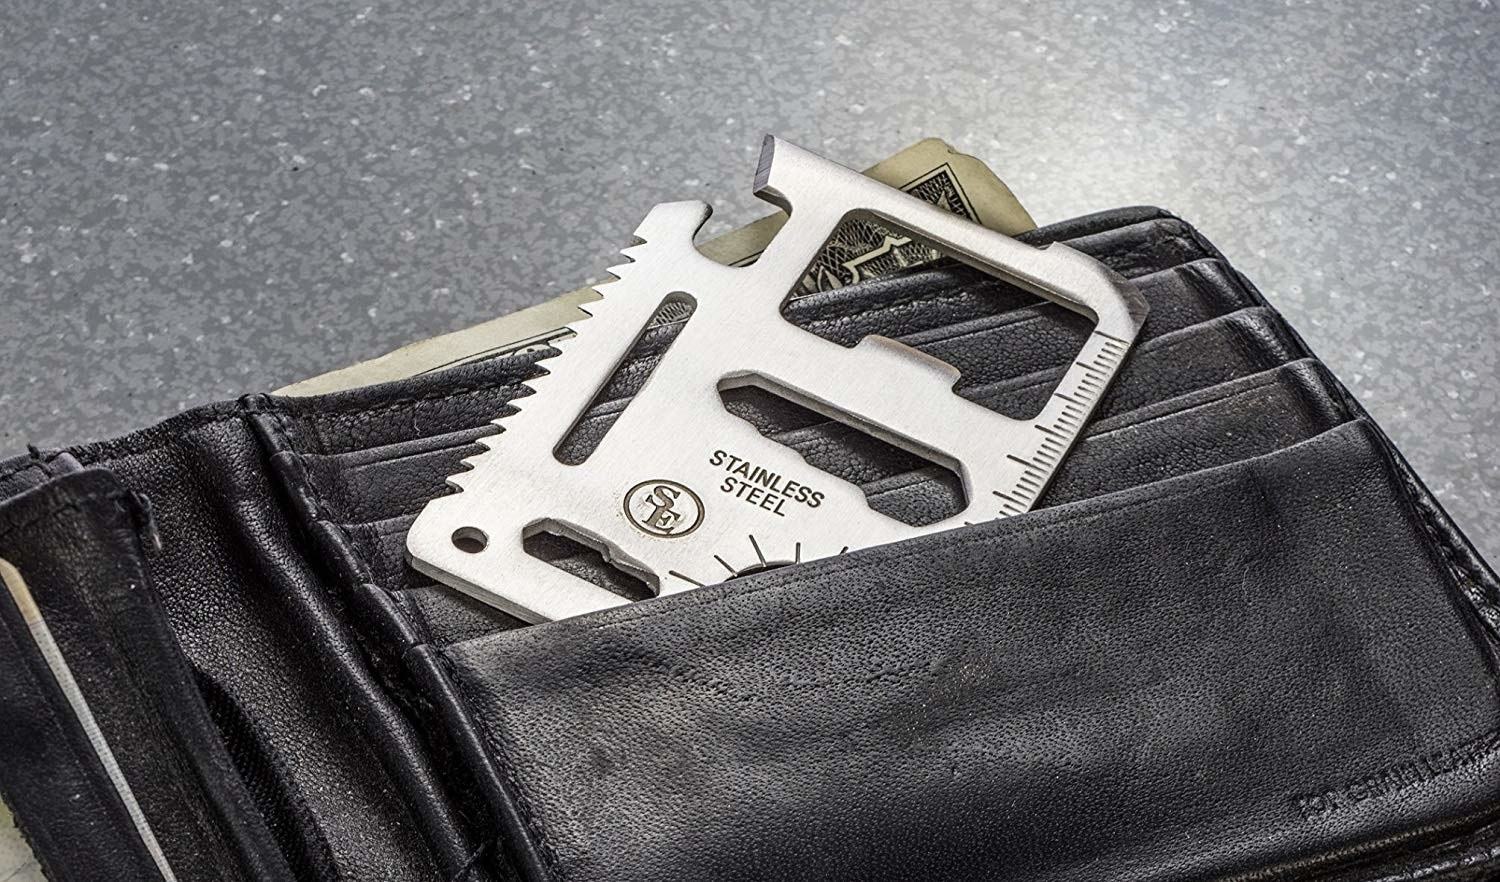 the credit card shape multitool in a wallet pocket